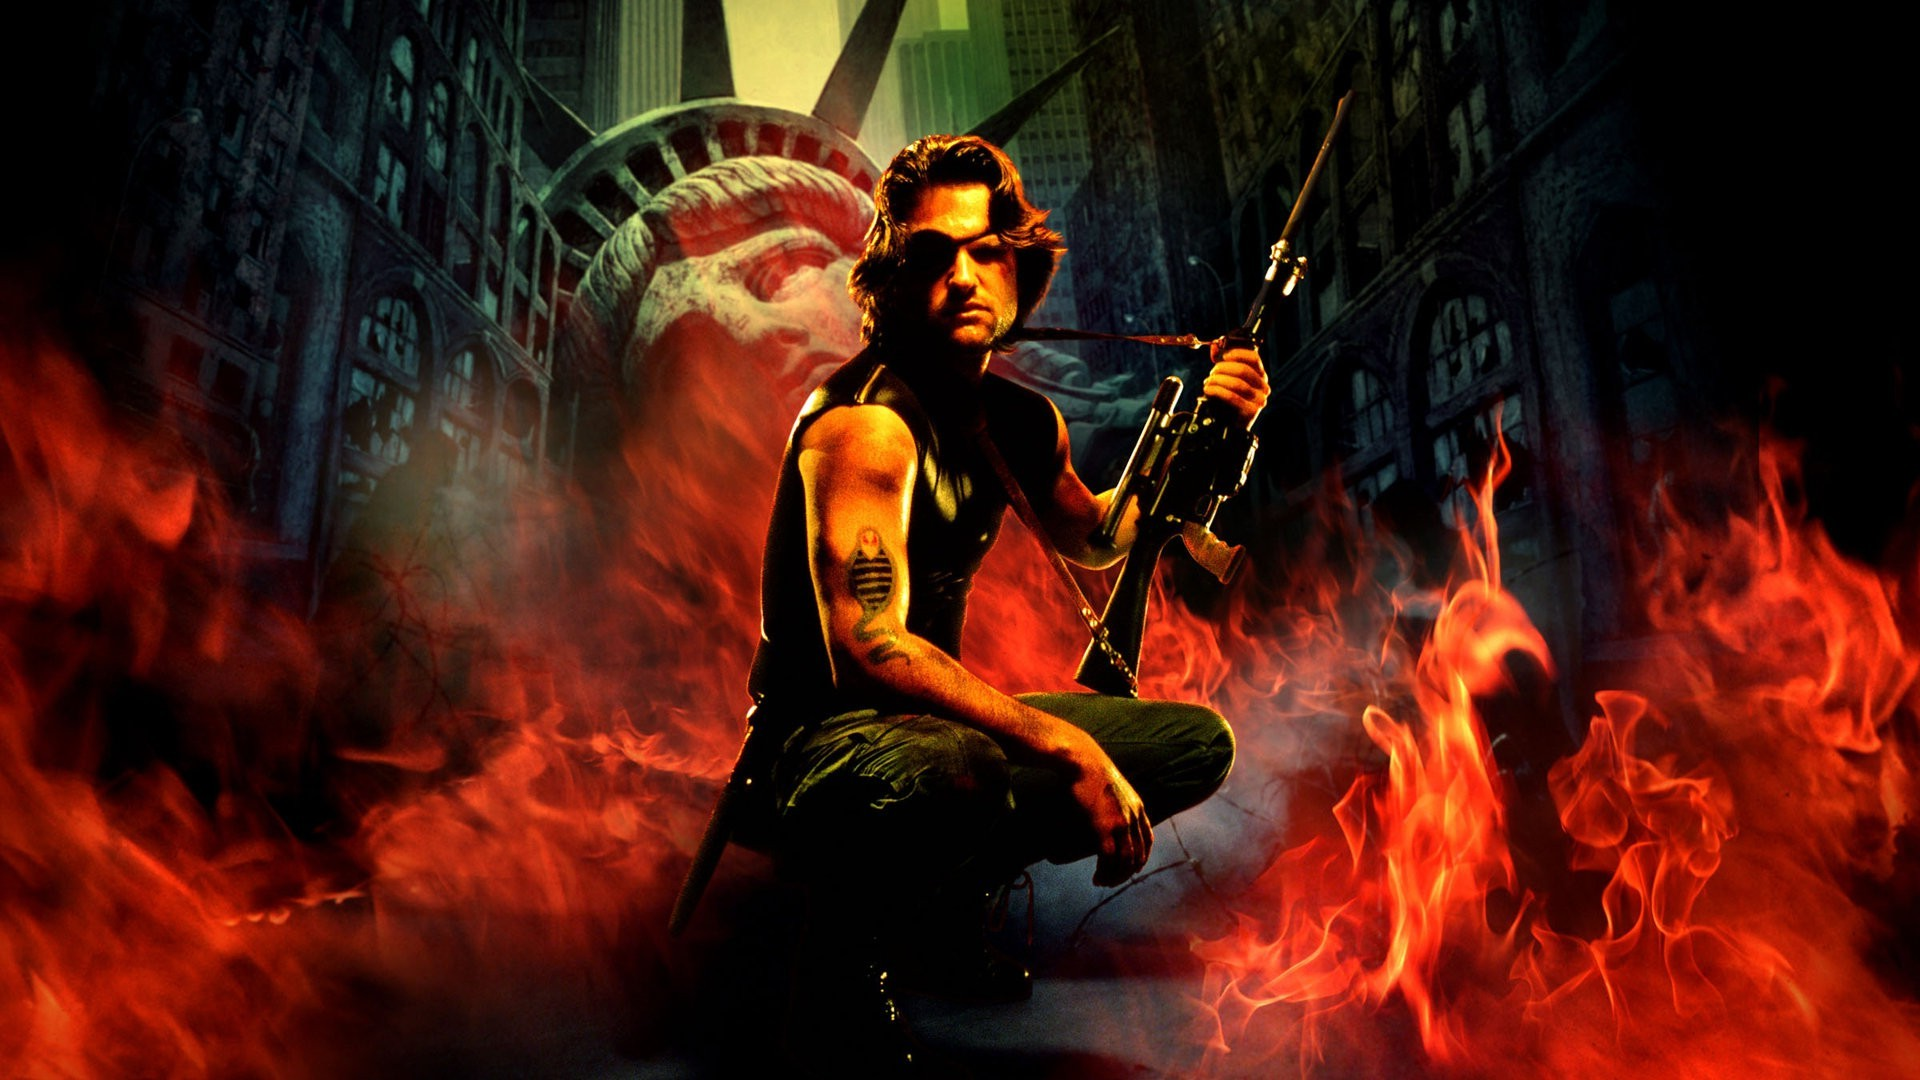 Win a 4K Ultra HD and Blu-ray 4 disc collection Edition of ESCAPE FROM NEW YORK